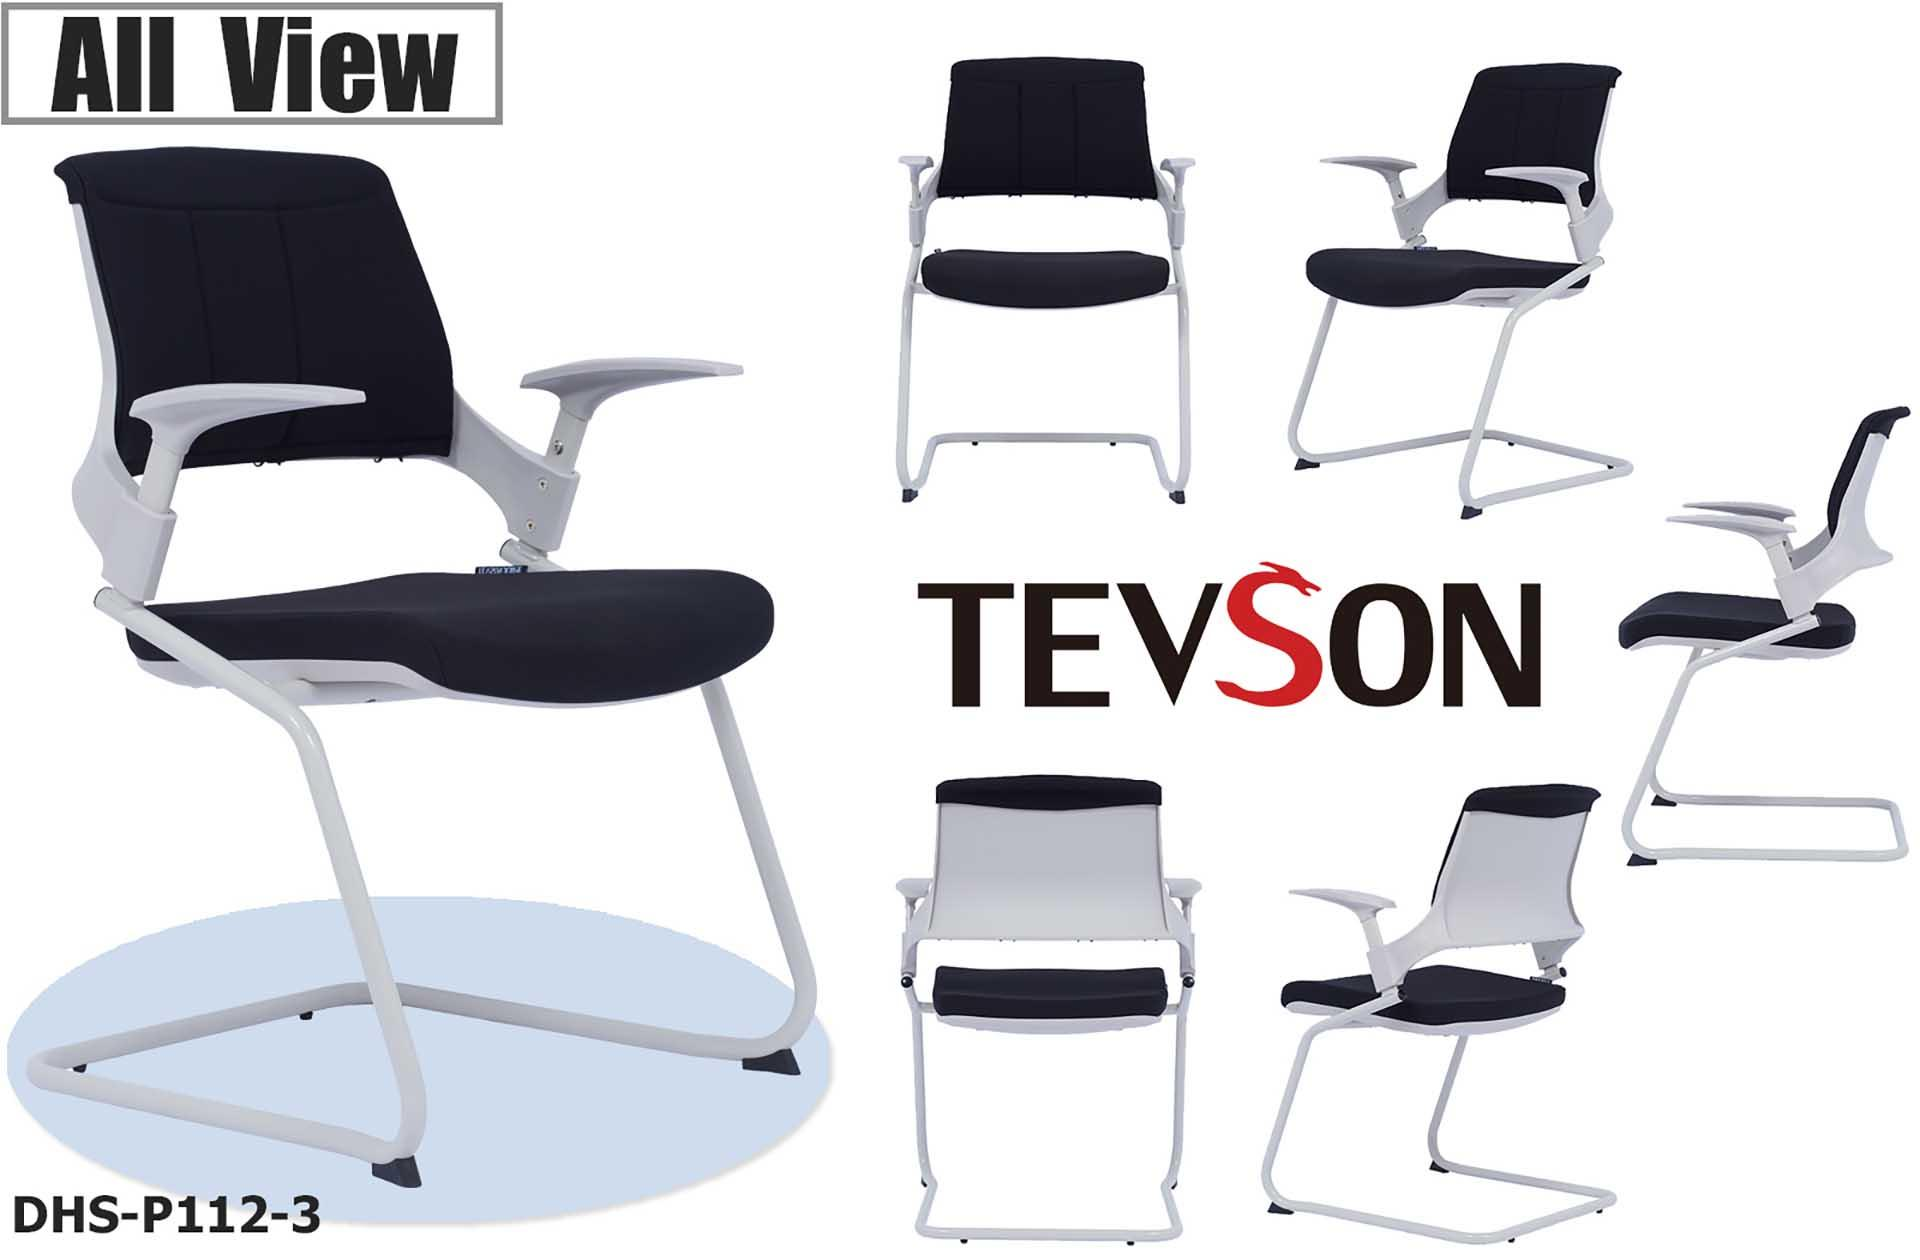 Tevson heavy modern conference room chairs certifications-1